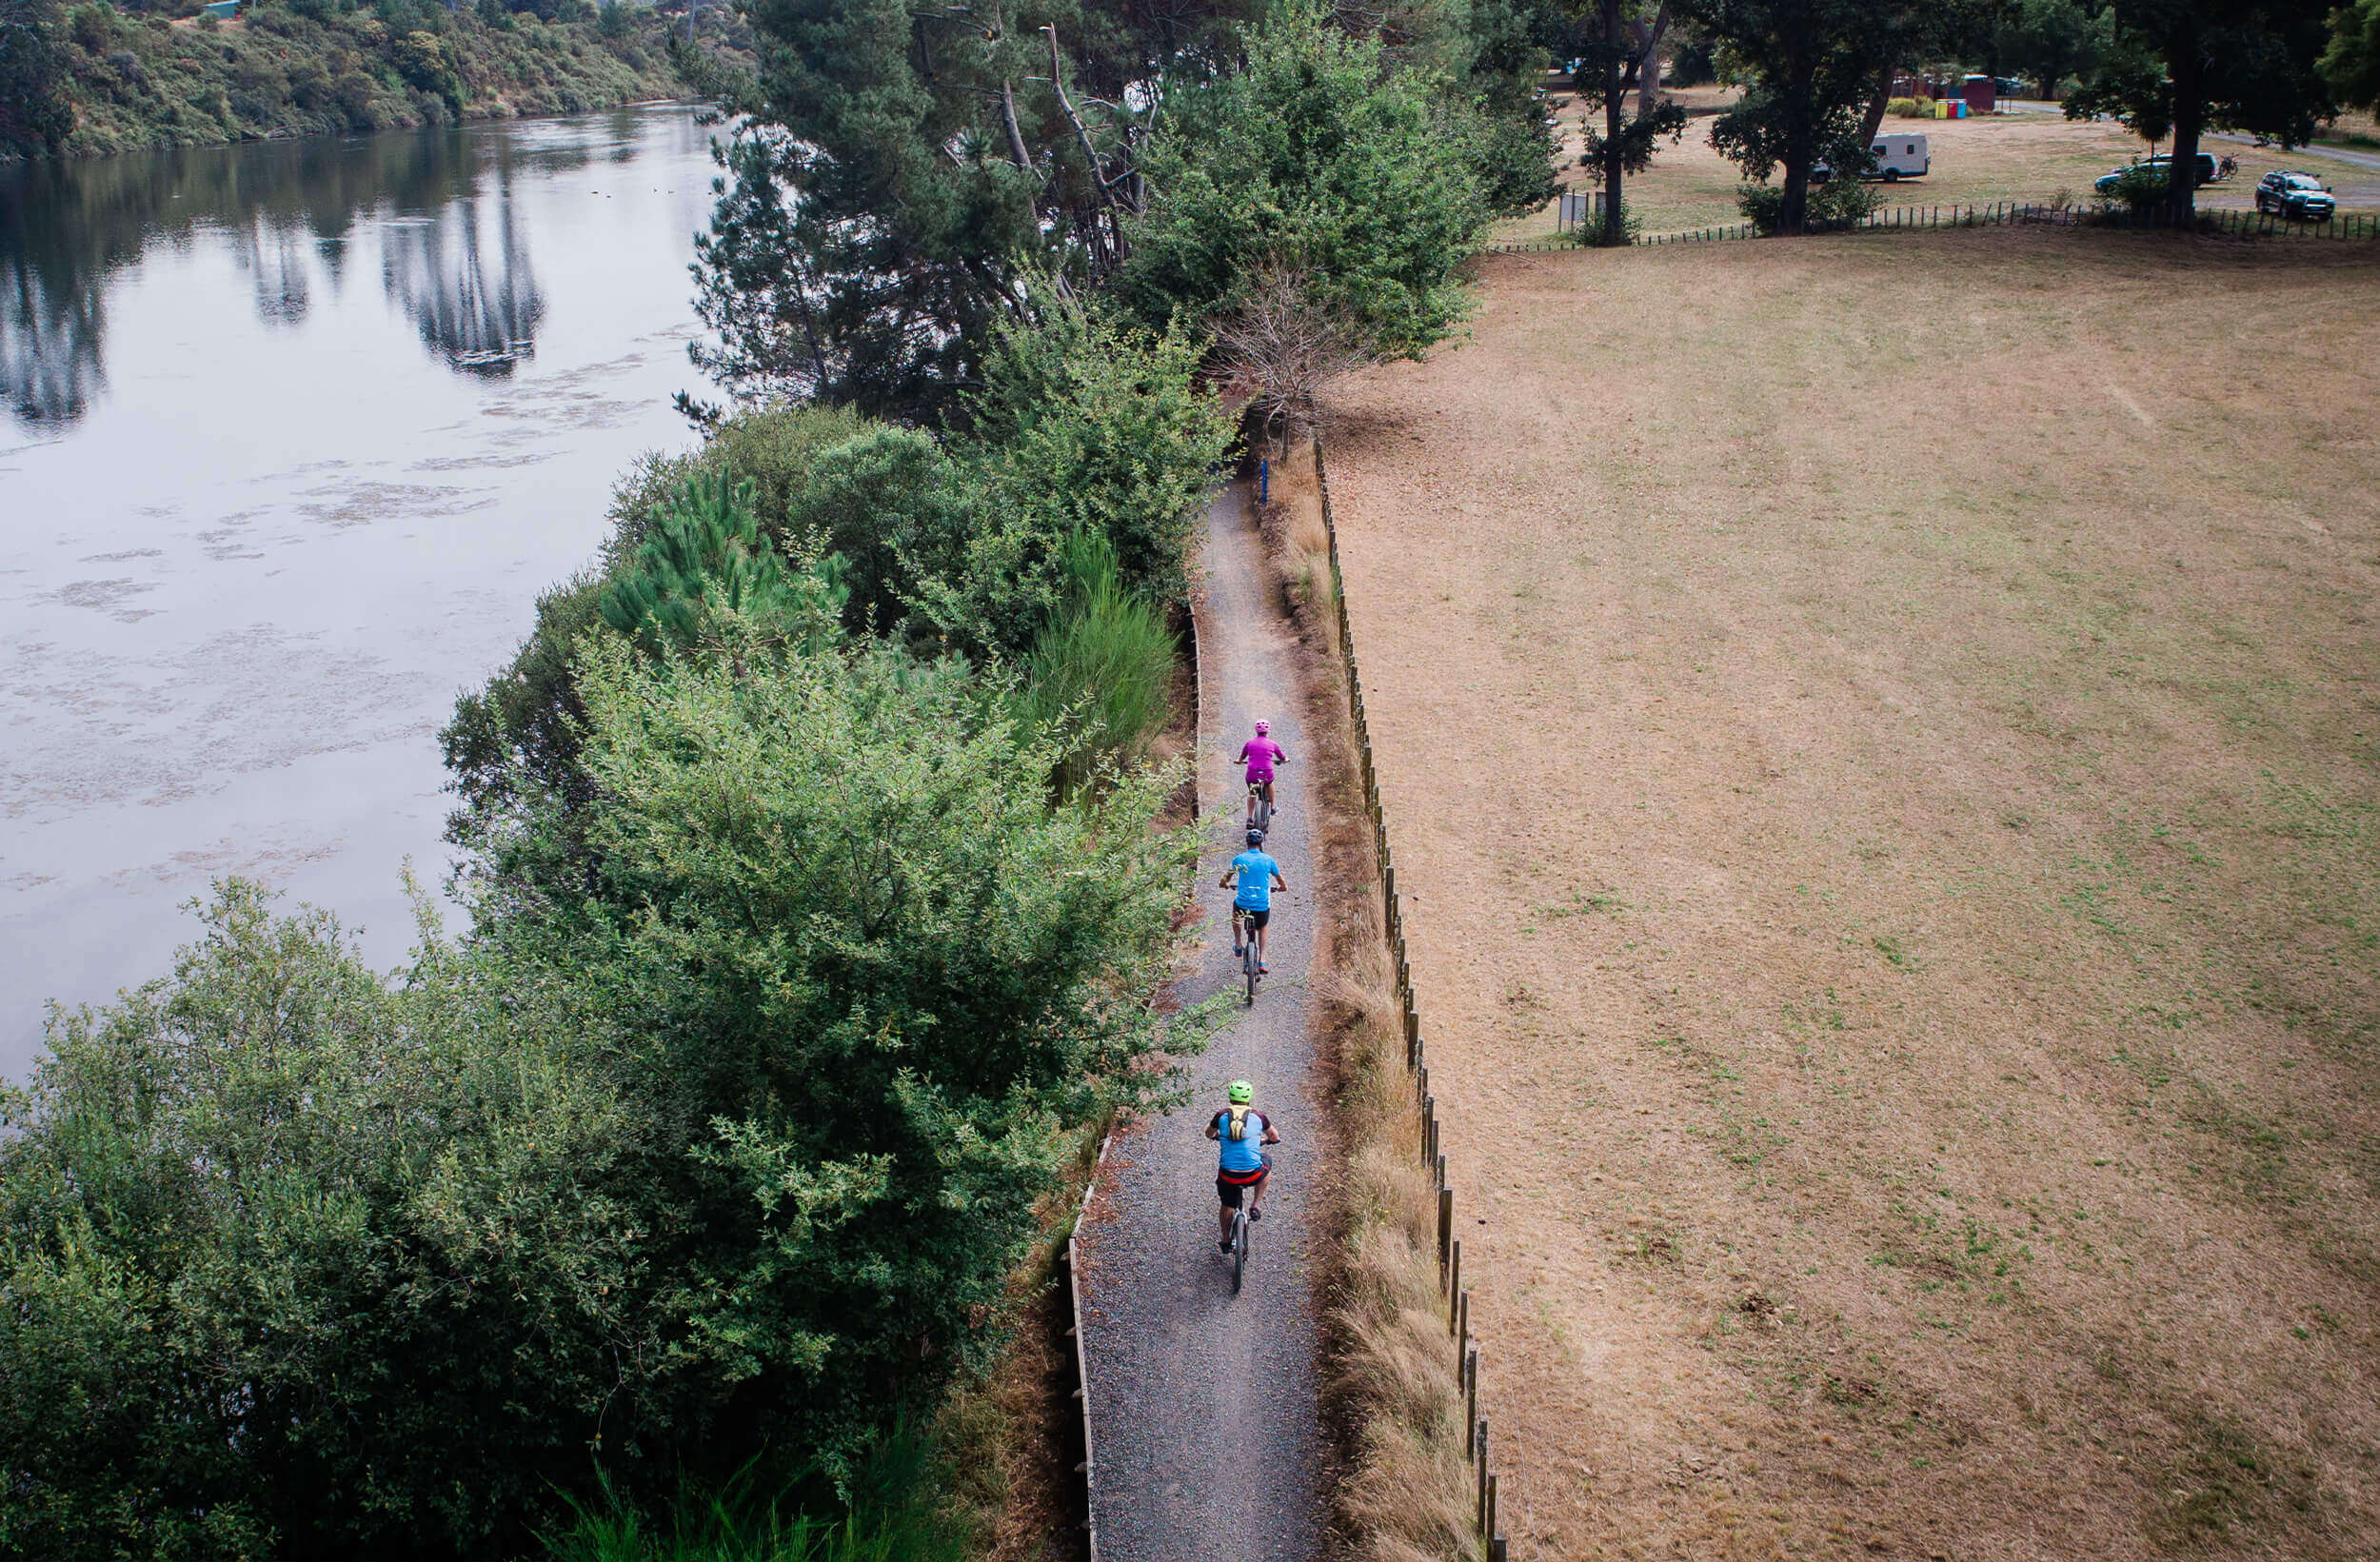 Cyclists enjoying riding the Waikato River Trail in South Waikato